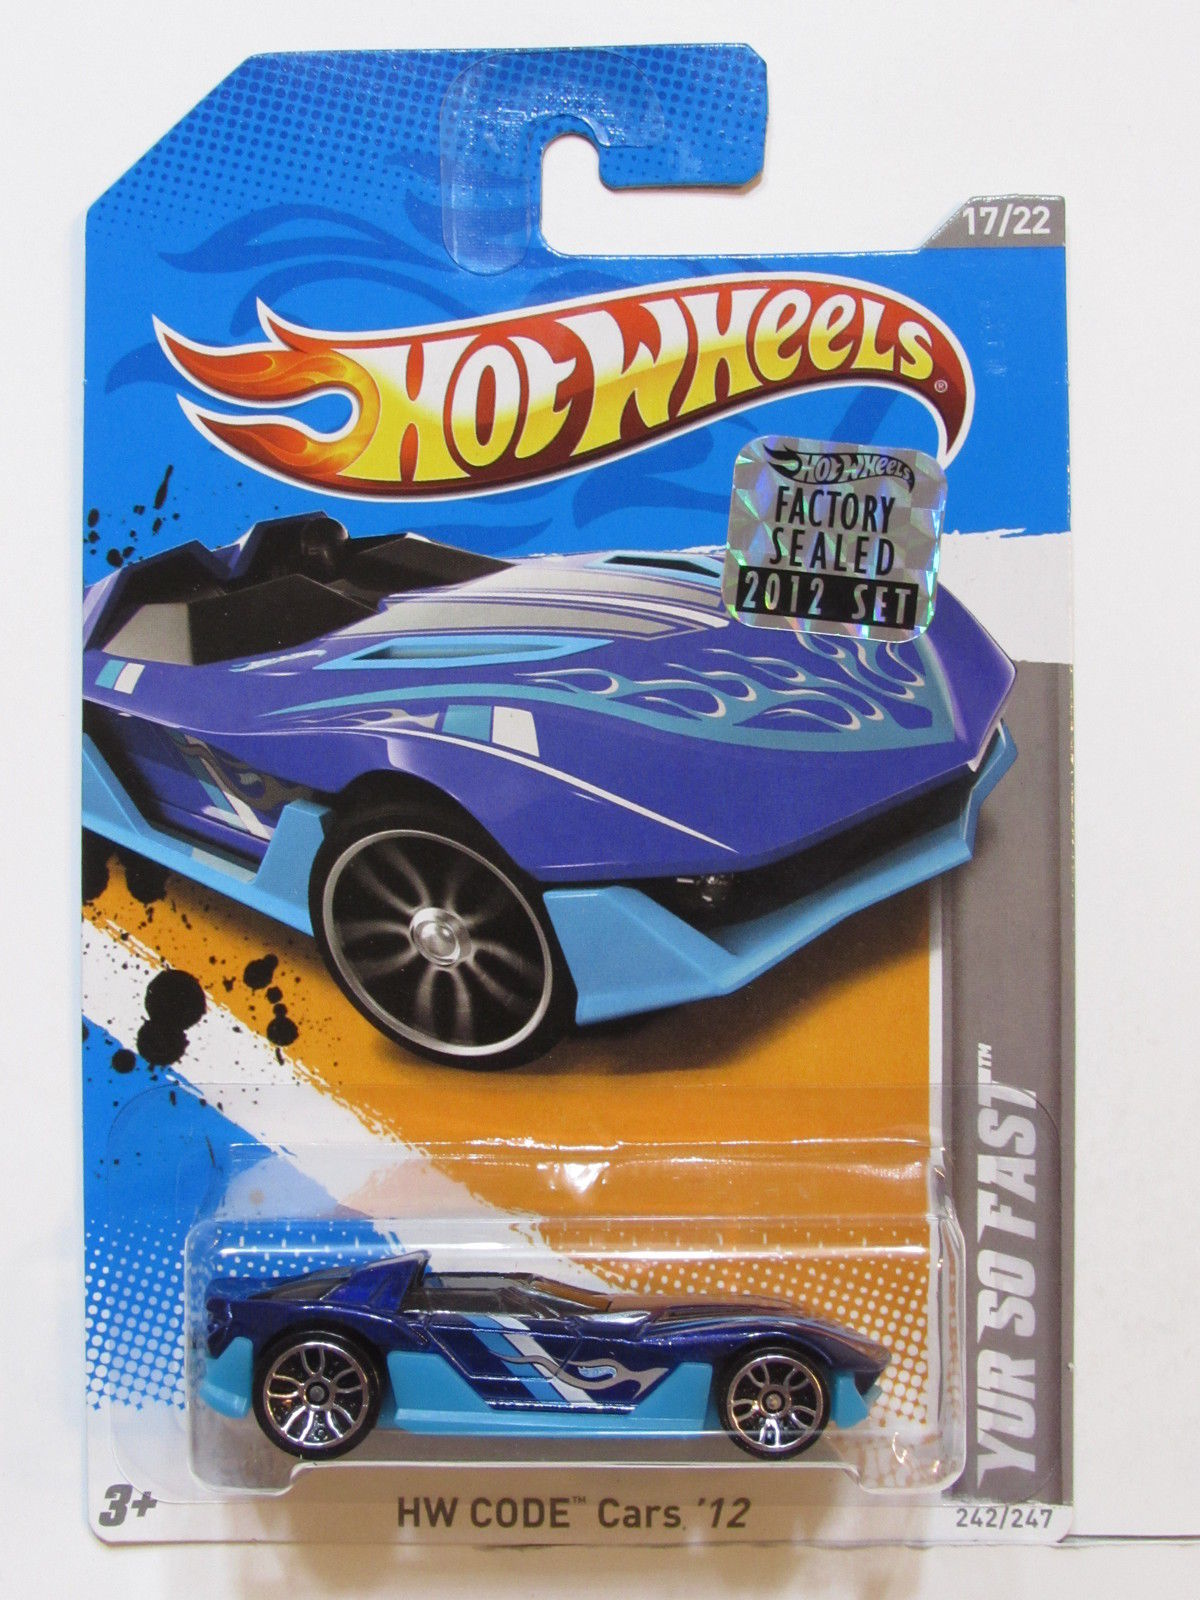 HOT WHEELS 2012 HW CODE CARS YUR SO FAST FACTORY SEALED